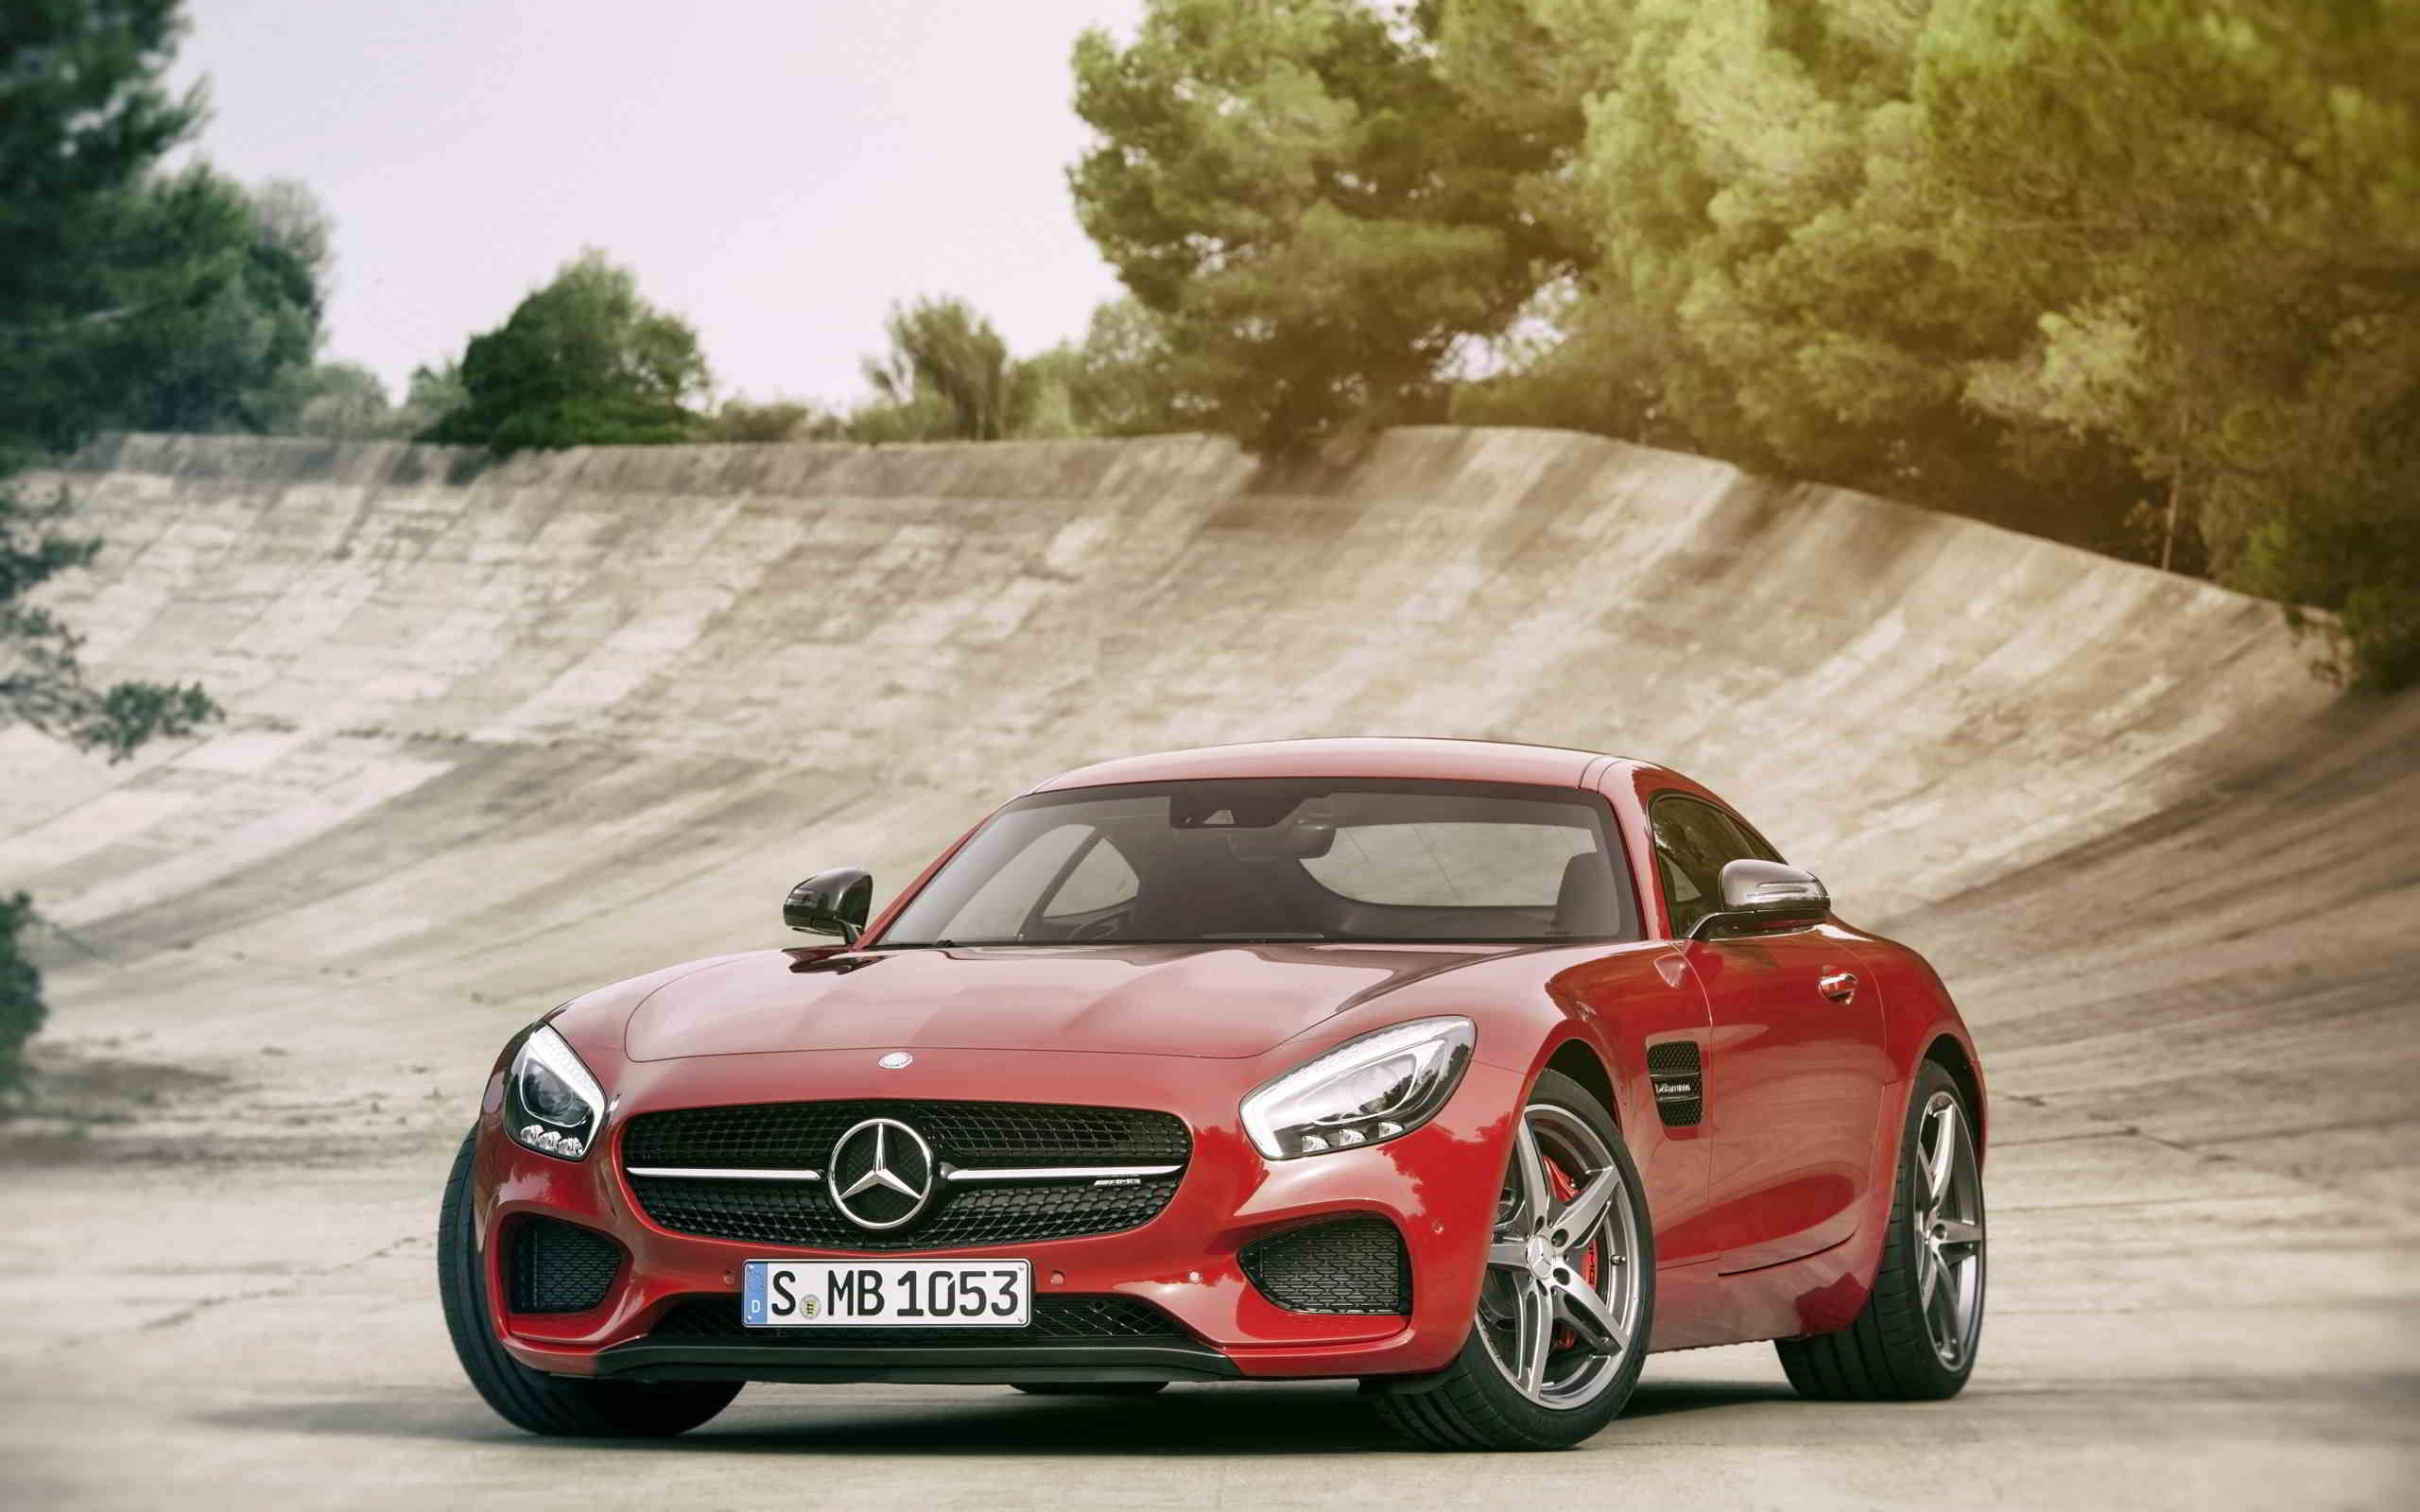 46 full hd cool car wallpapers that look amazing (free download)